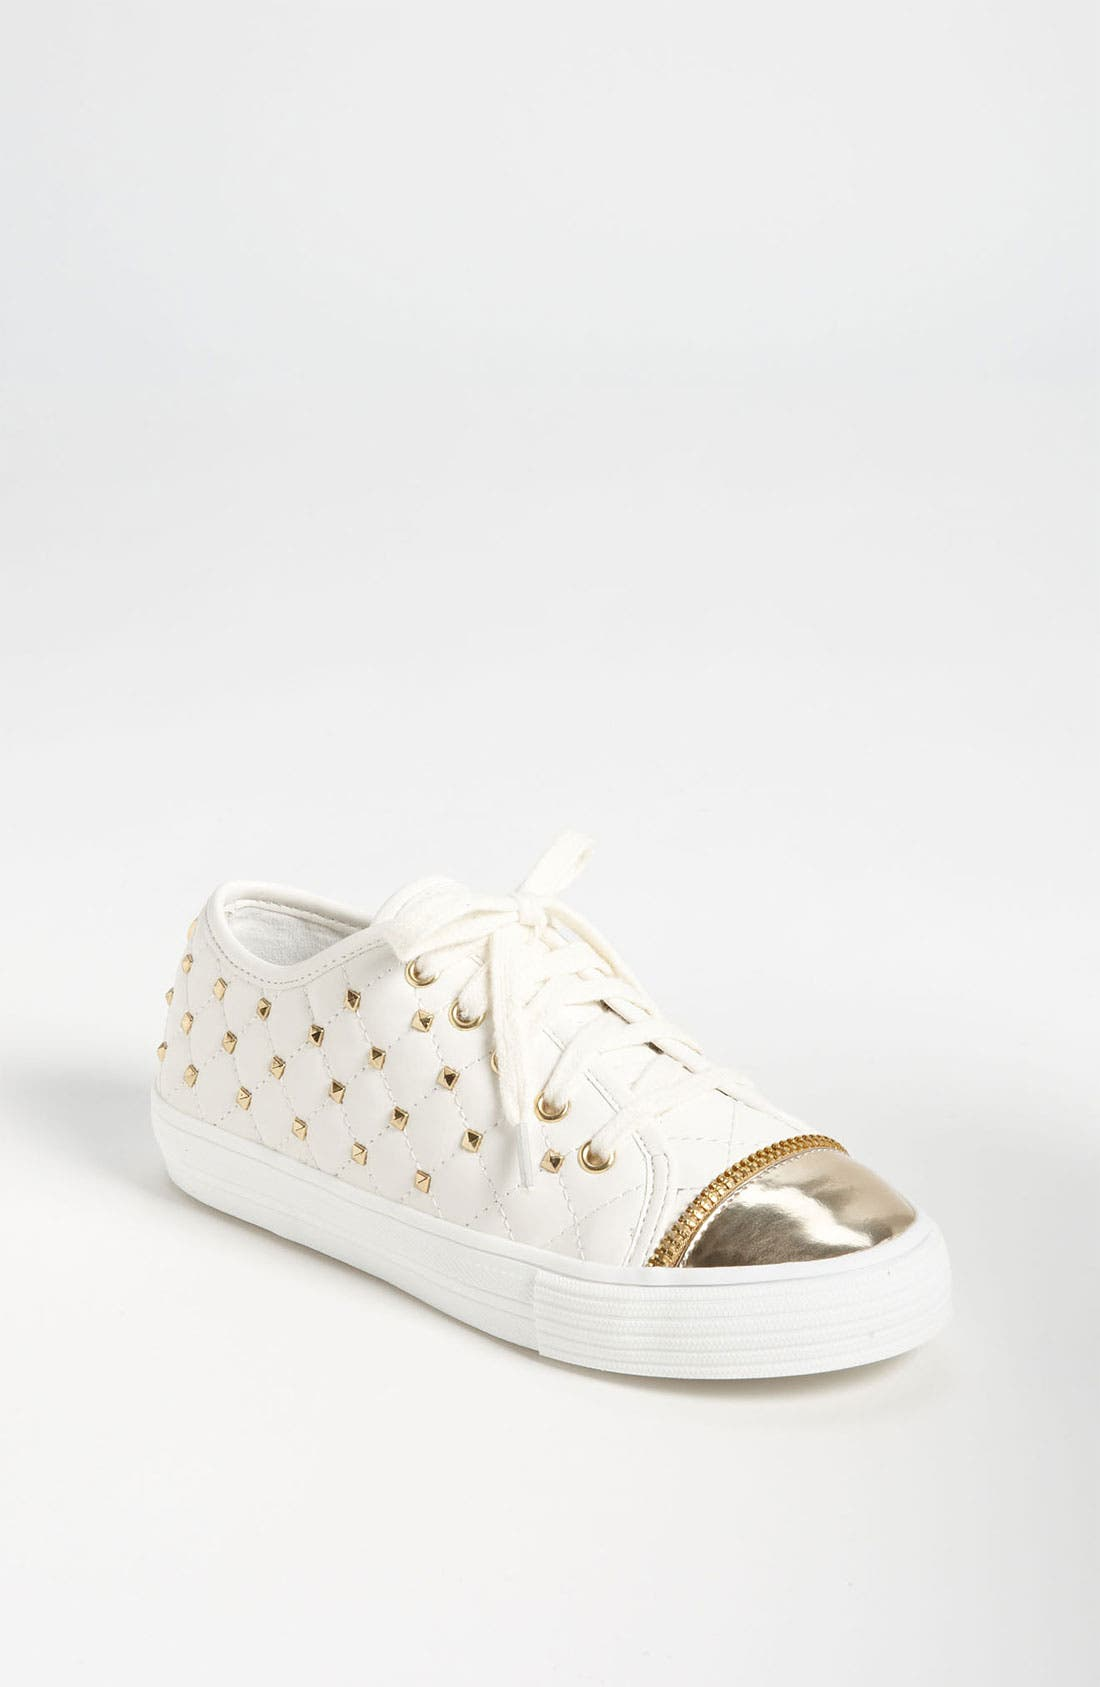 Alternate Image 1 Selected - MICHAEL Michael Kors 'Melbourne' Sneaker (Little Kid & Big Kid)